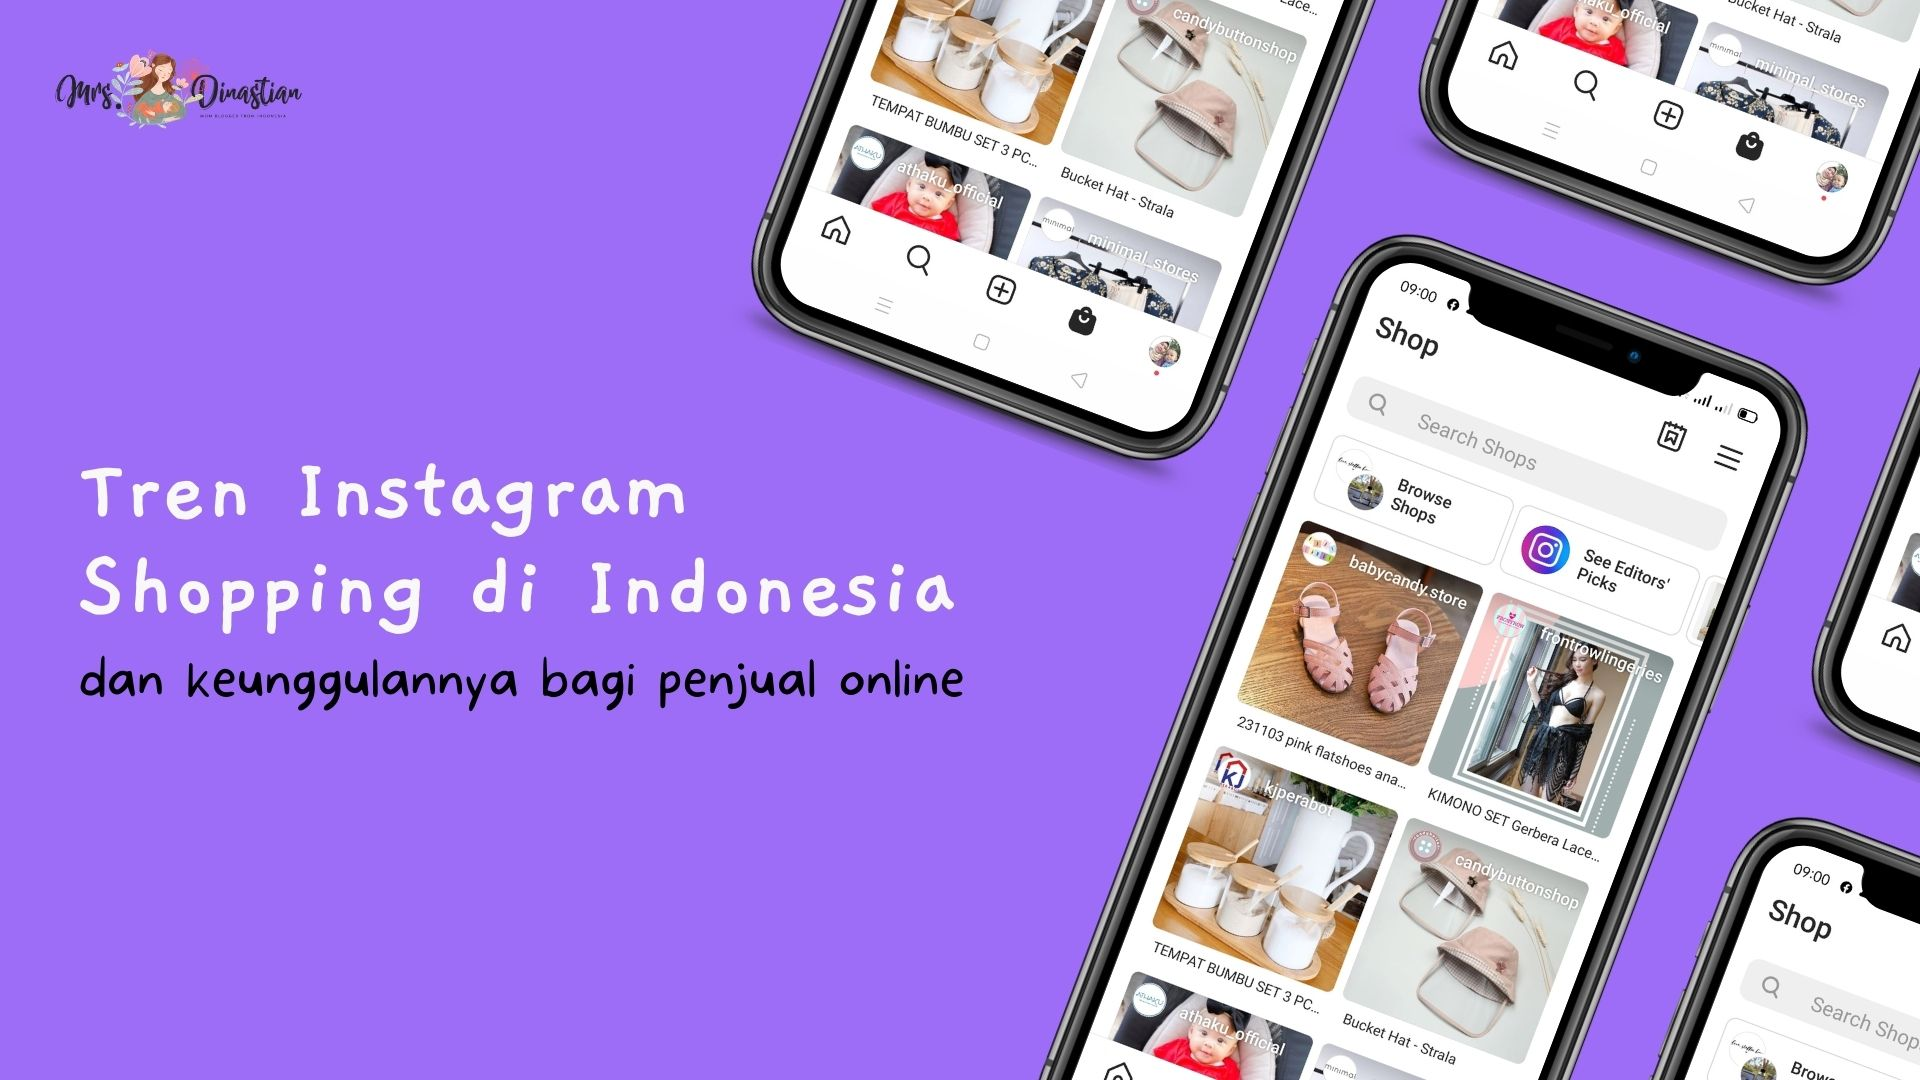 Tren Instagram Shopping di Indonesia